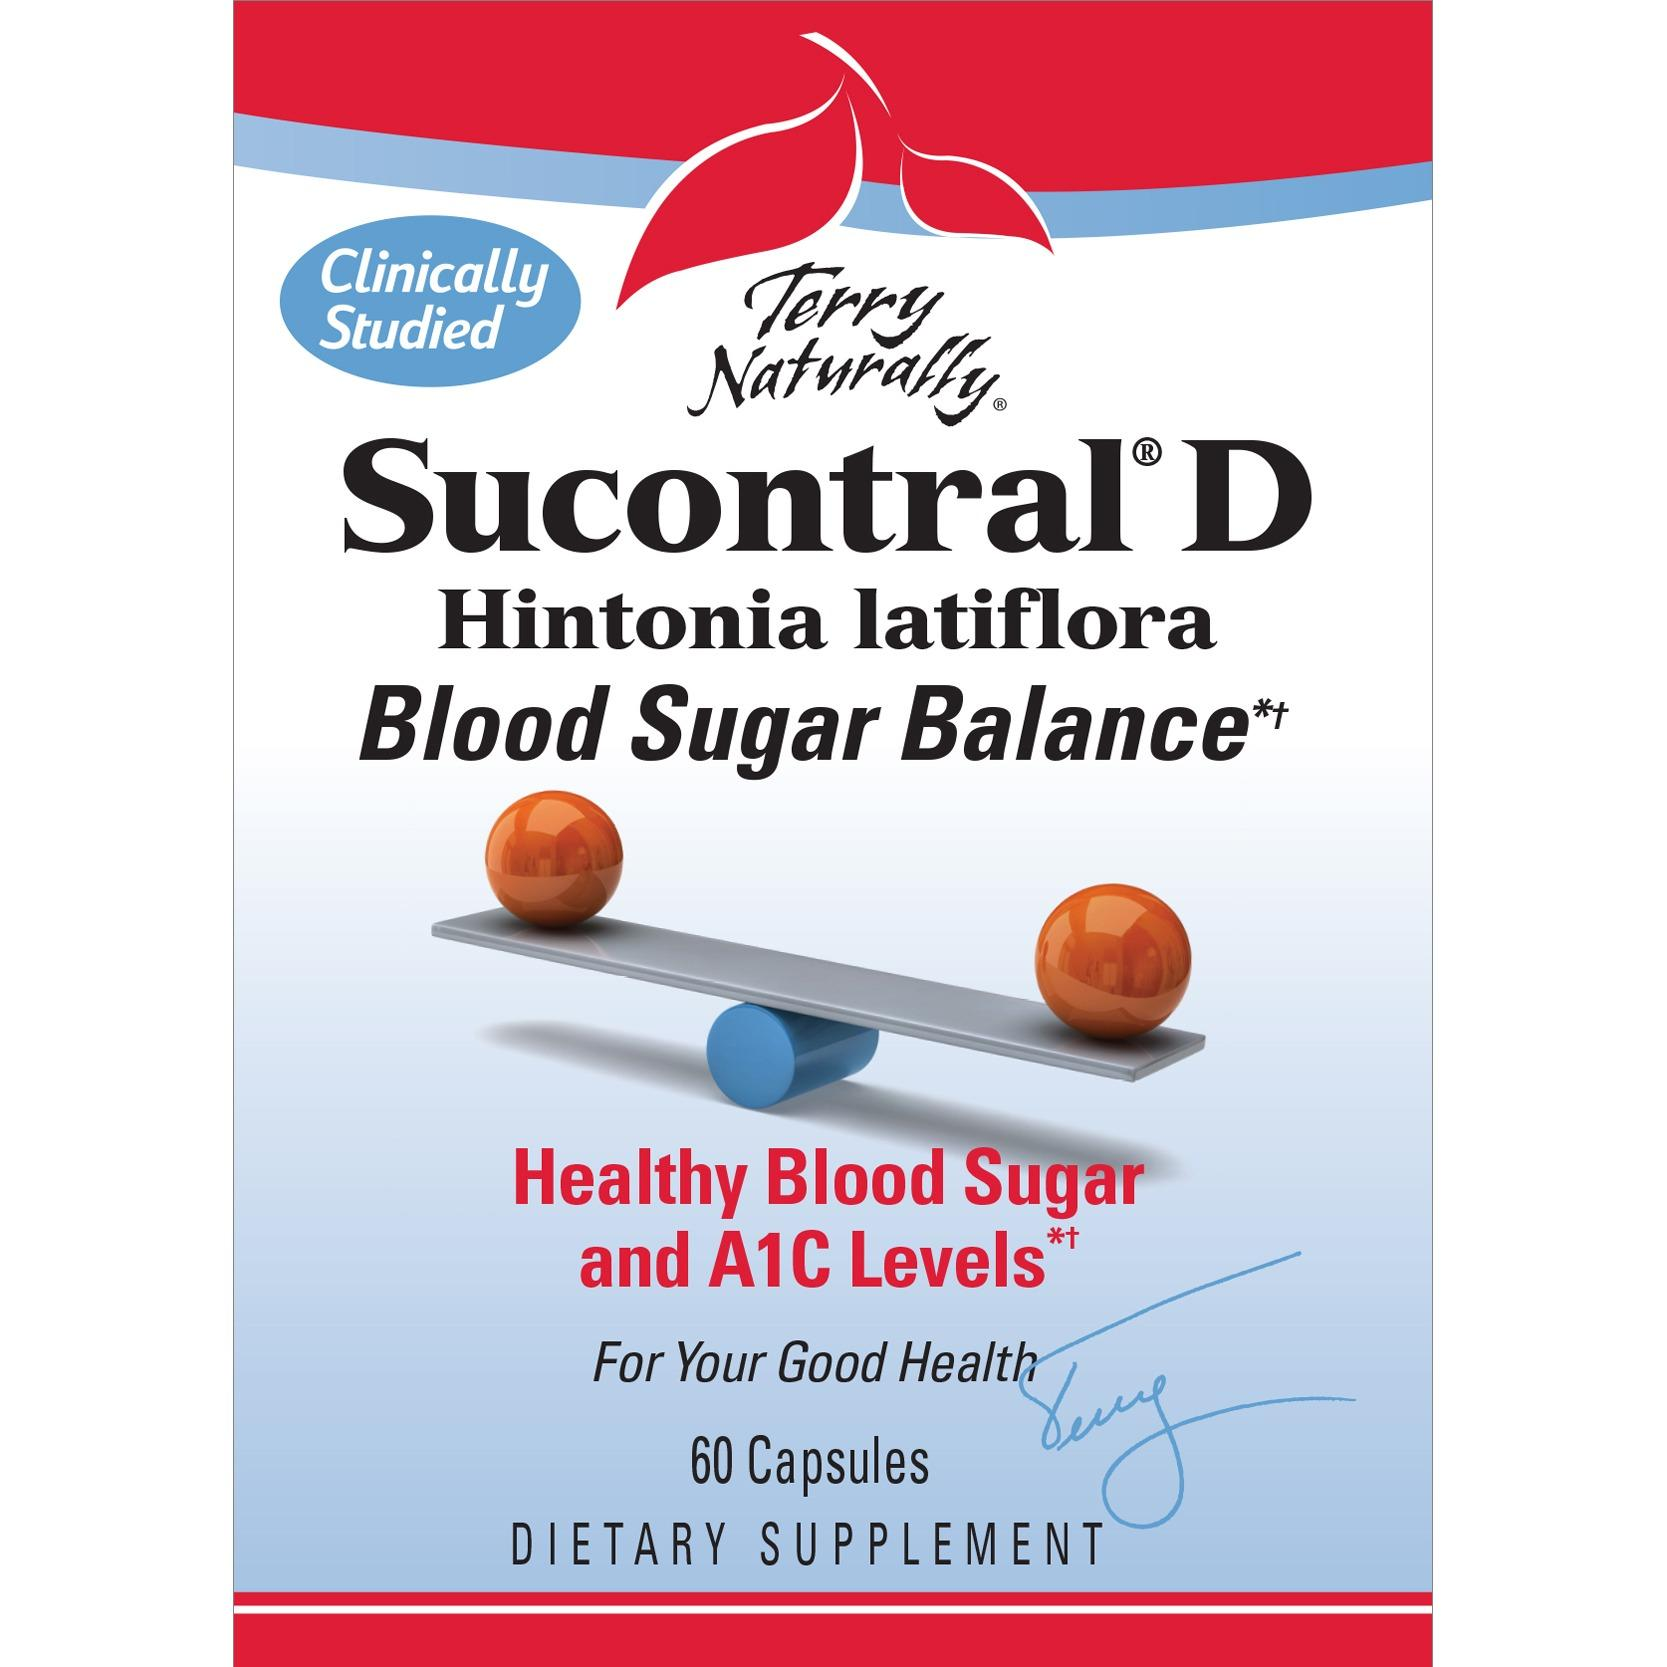 Terry Naturally Sucontral D 60 Caps (blood Sugar Balance - Healthy Insulin Function & Glucose Support) By Pain Solutions Pte Ltd.